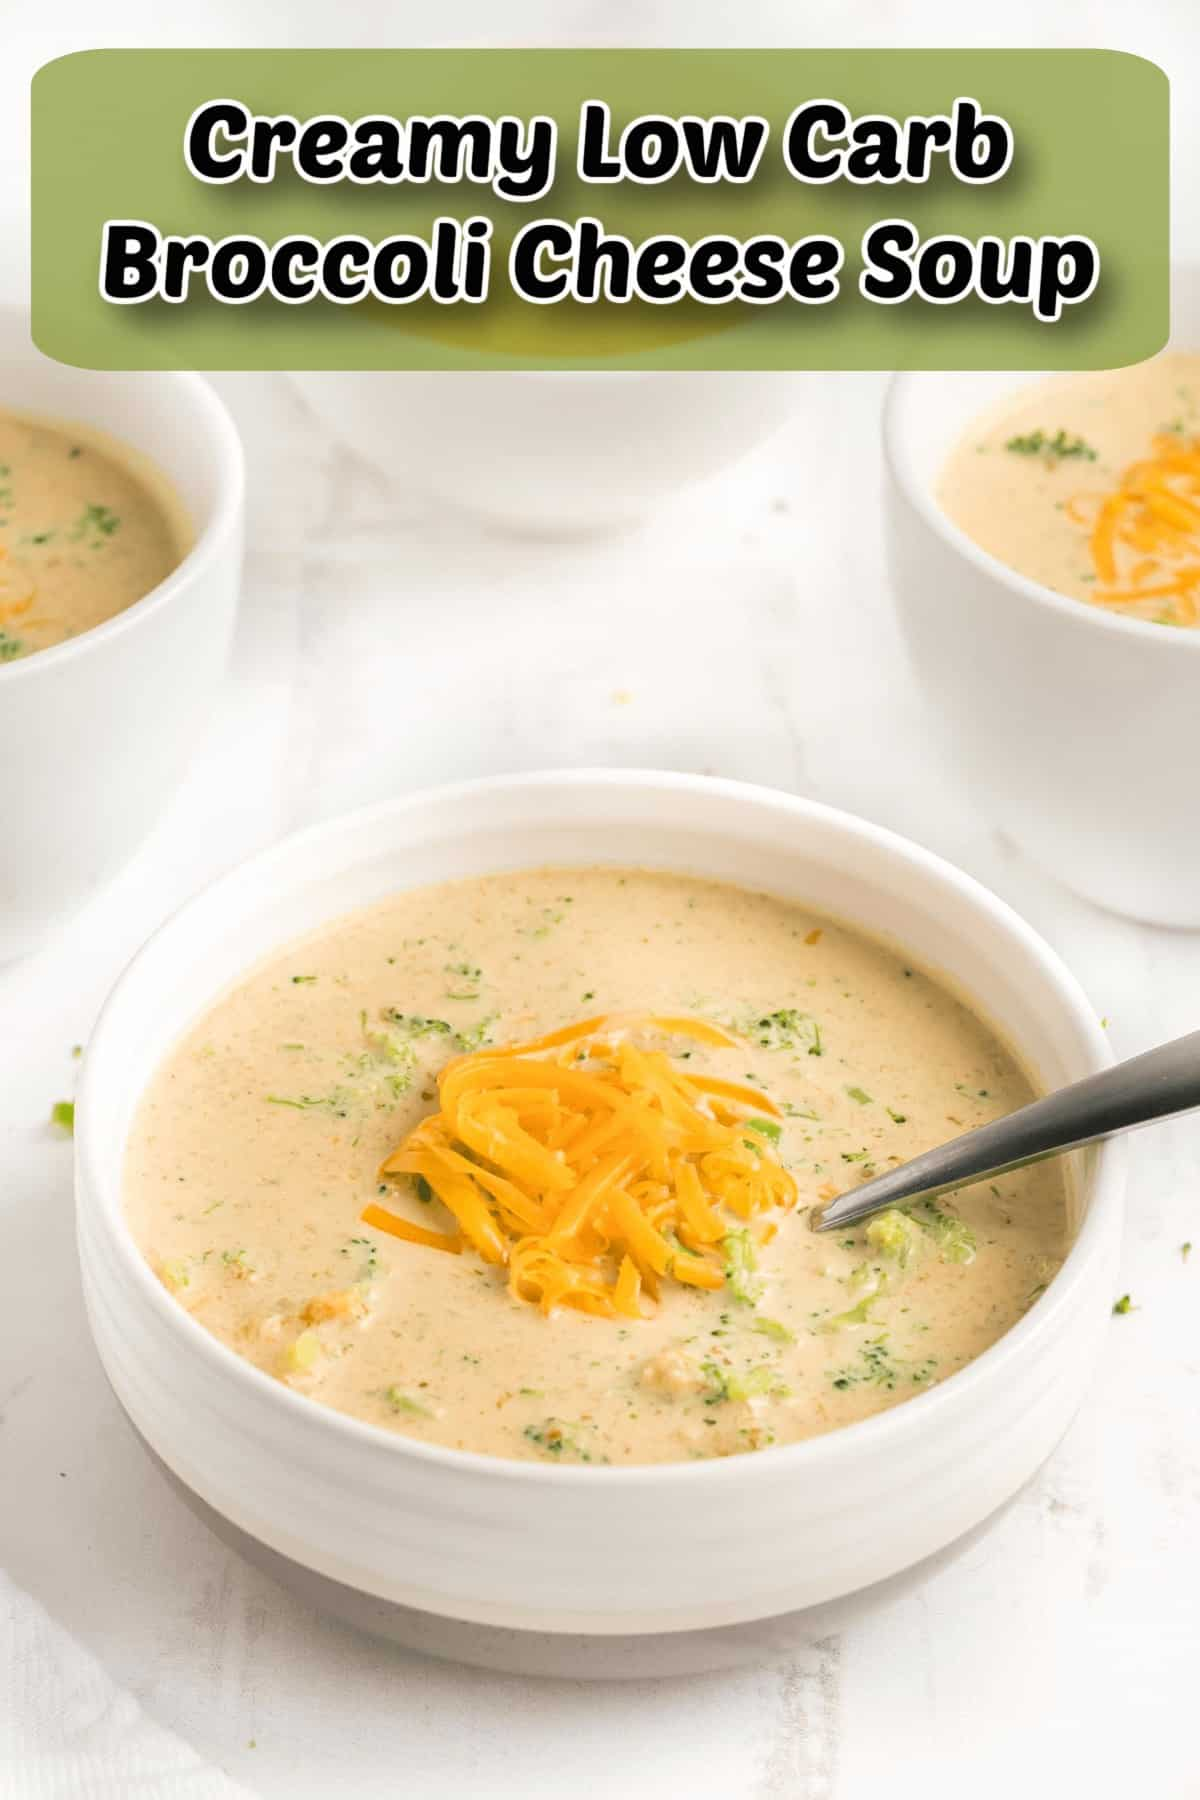 creamy low carb broccoli cheese soup pintrest image